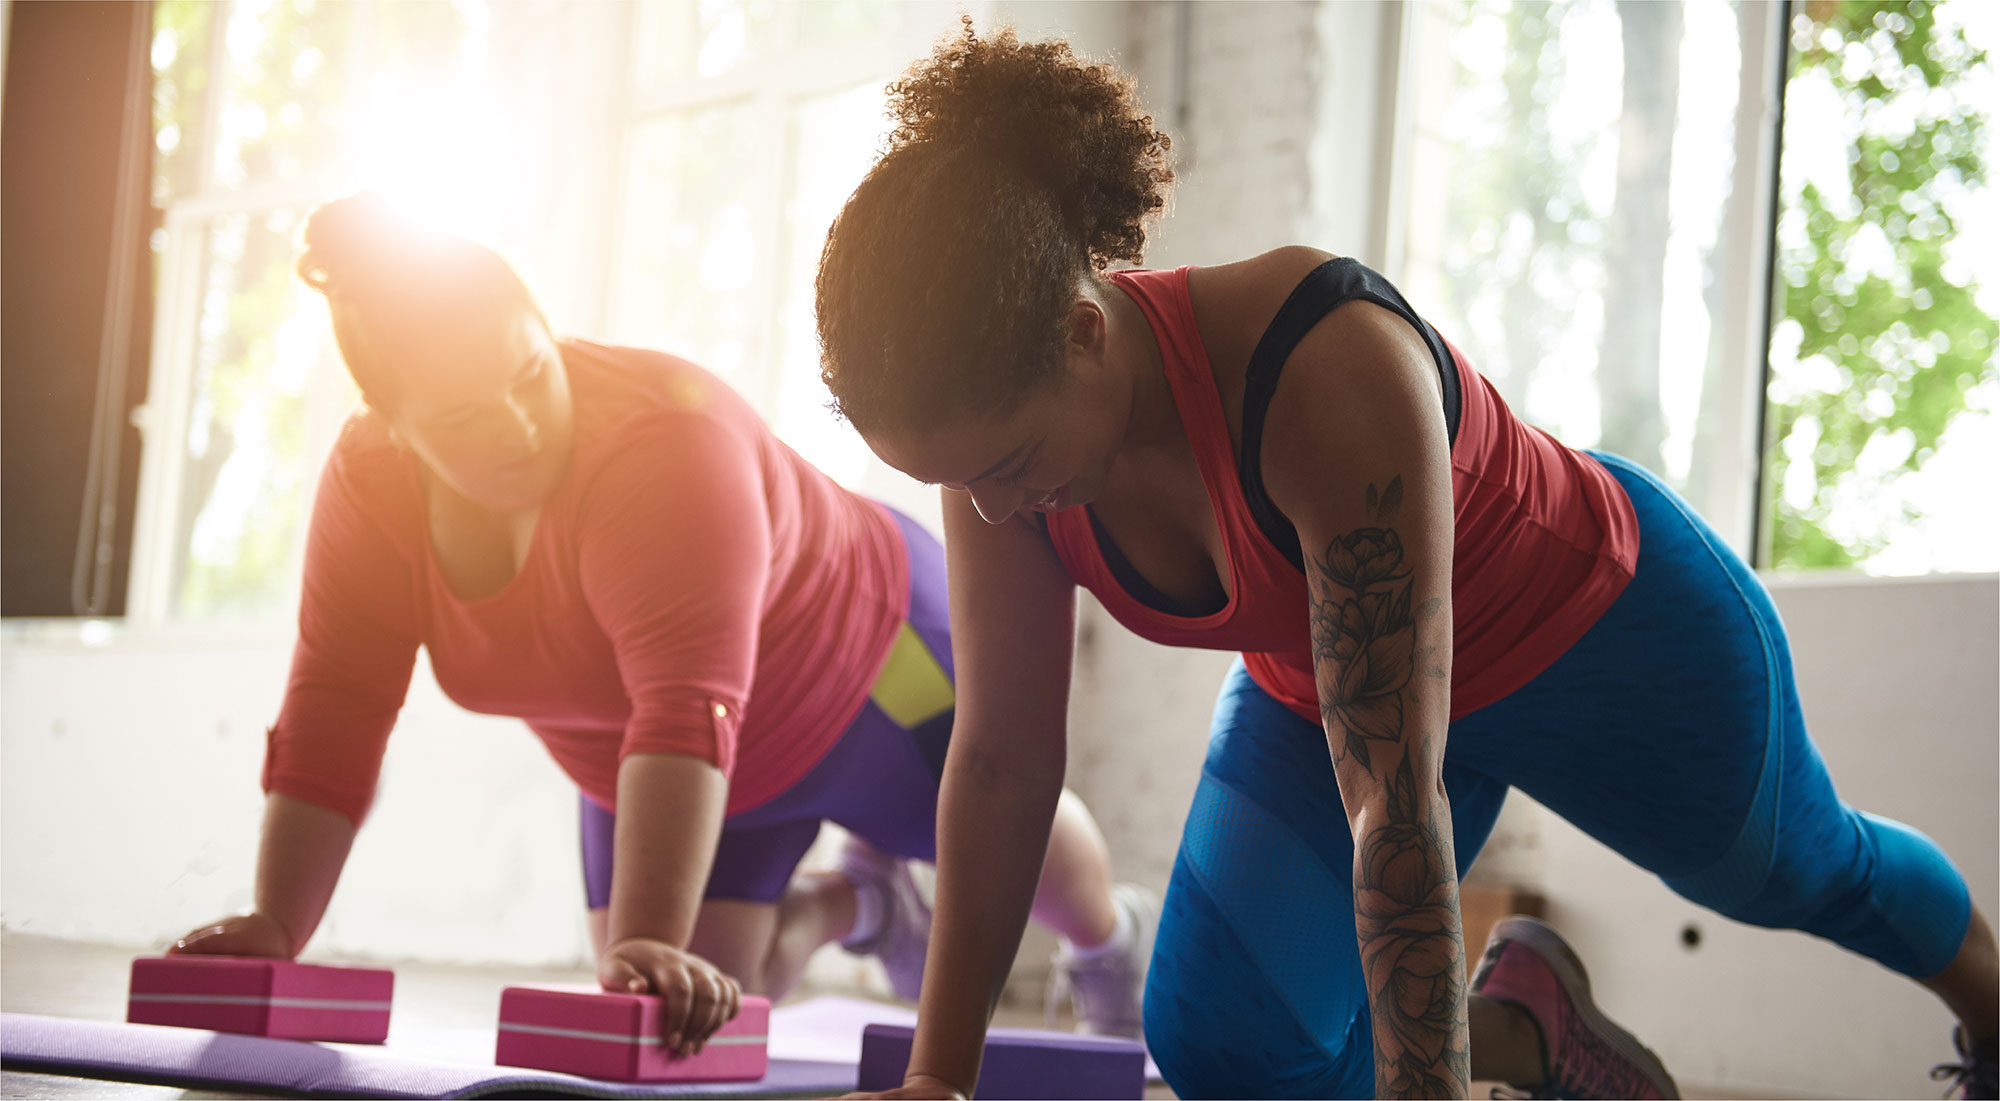 Less than a third of Brits are happy with their fitness levels following COVID pandemic – as National Fitness Day calls for a revolution in activity